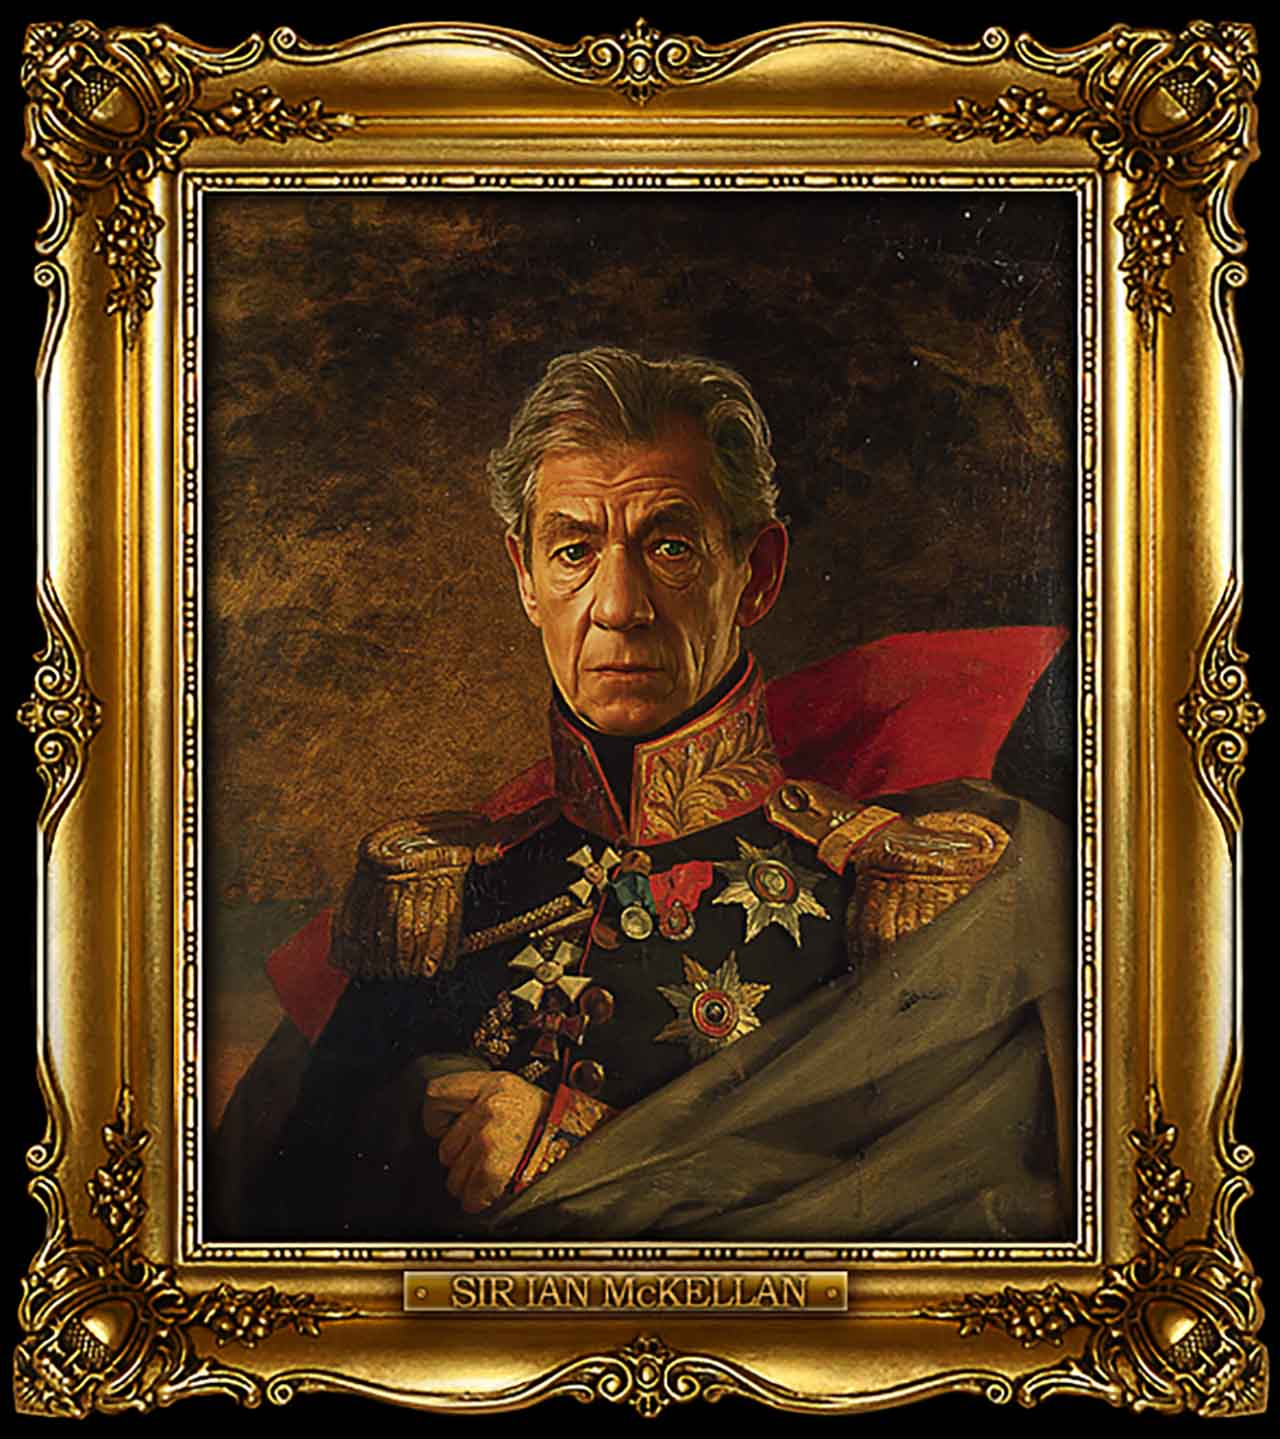 Artist Turns Famous Actors Into Russian Generals - Sir Ian McKellen